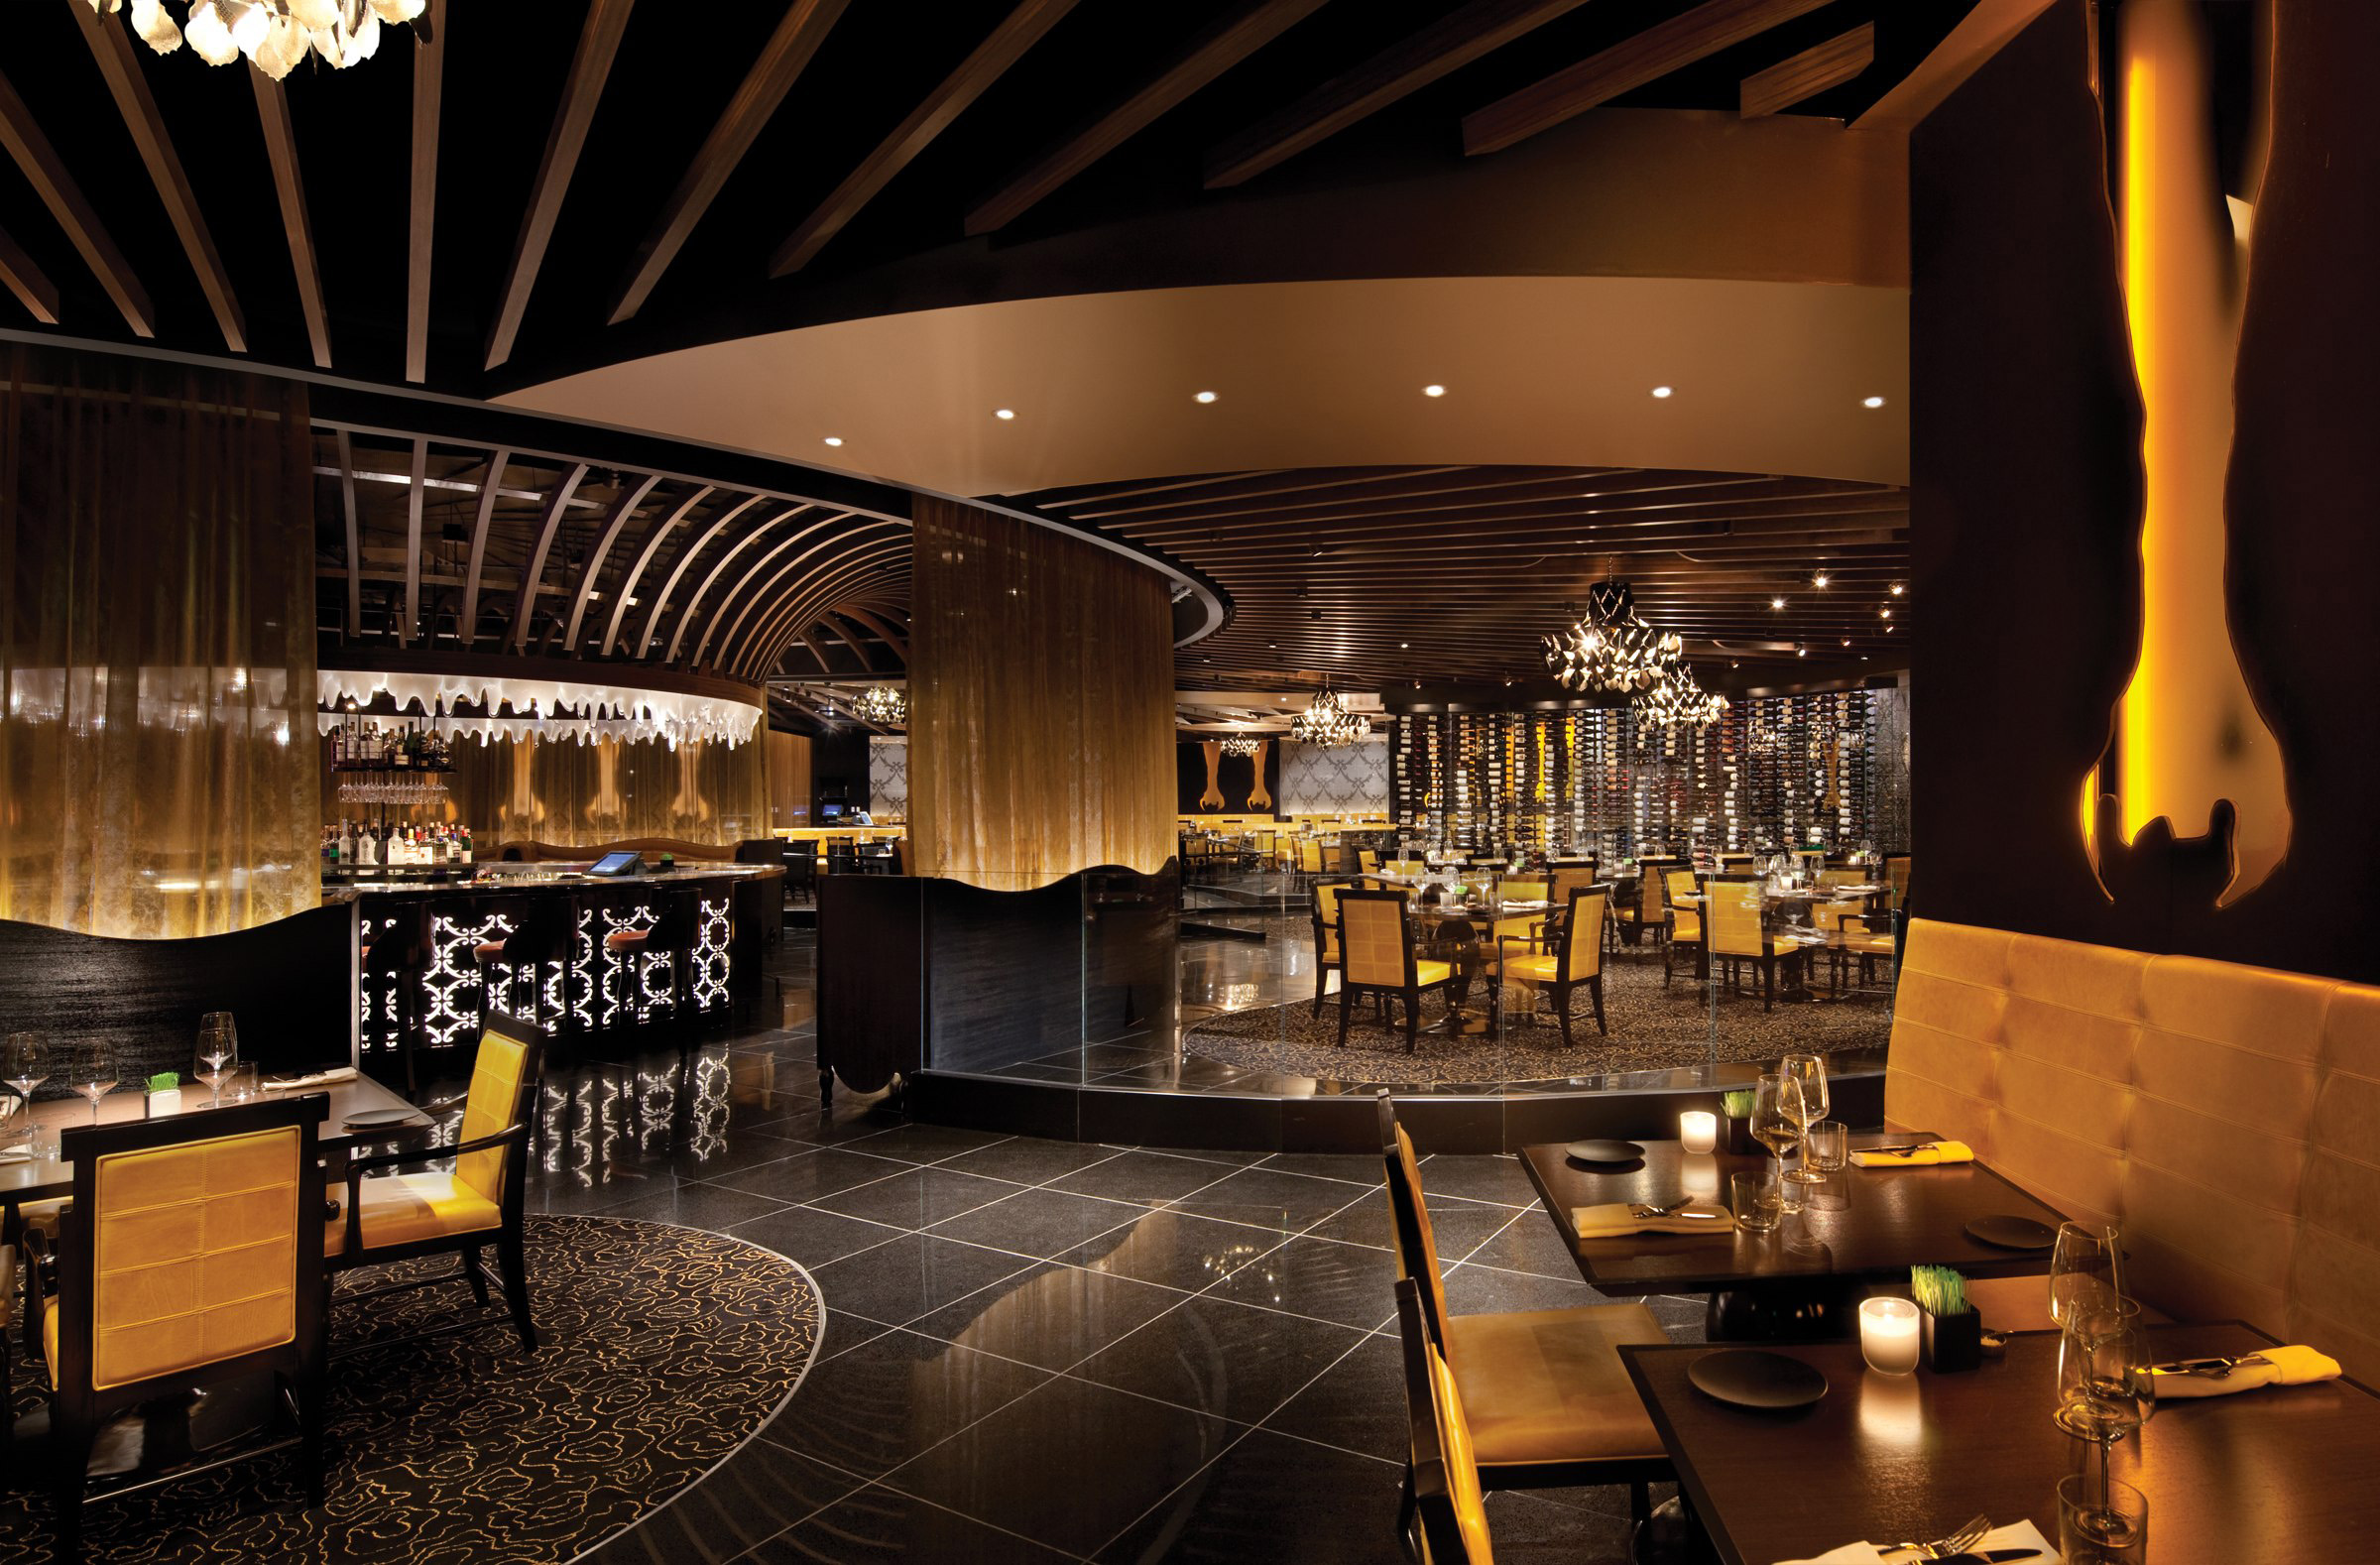 ARIA Jean Georges Steakhouse